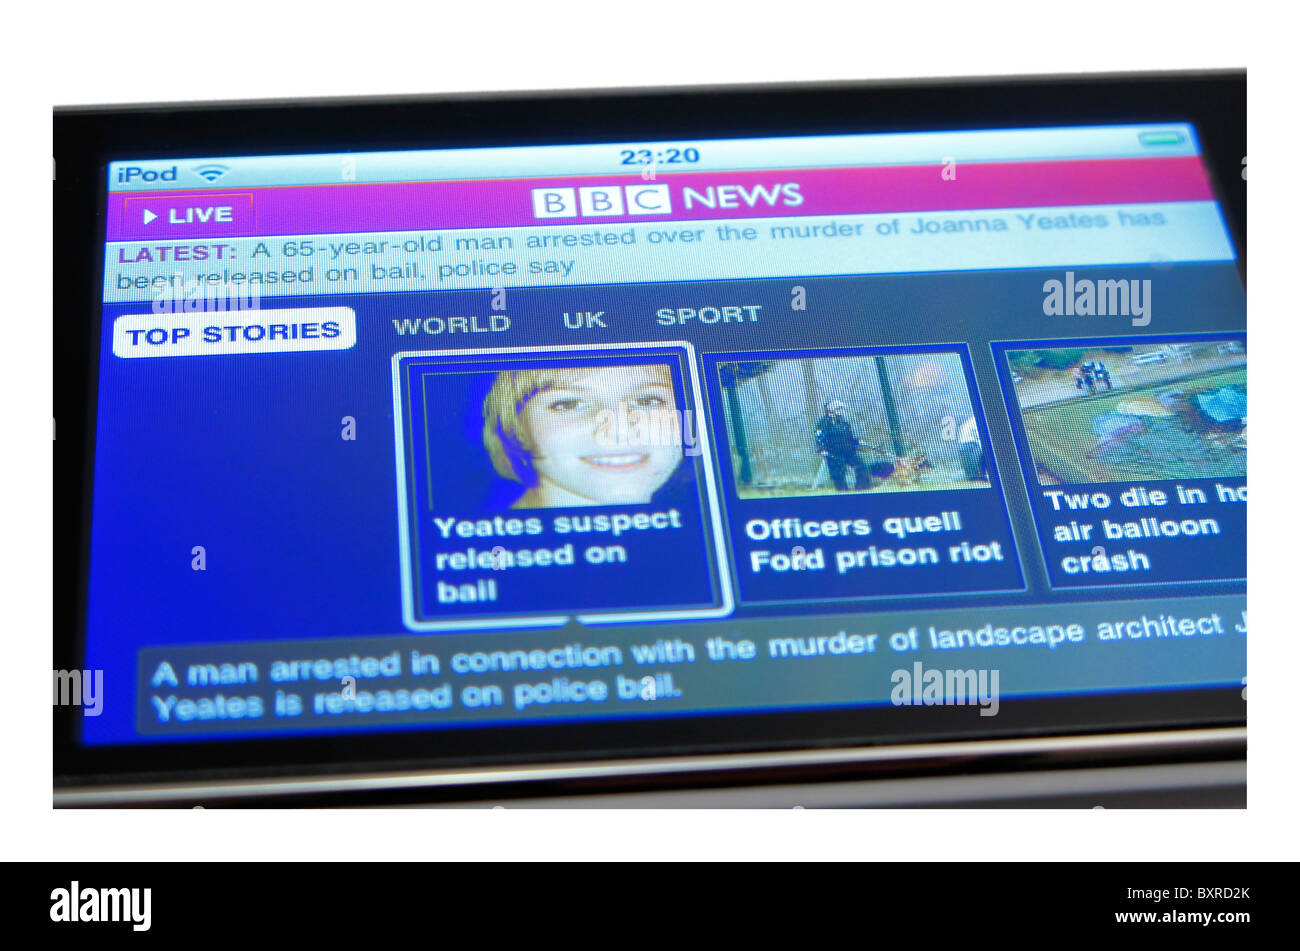 cutout of ipod touch showing bbc news home page Joanna Yeates murder enquiry - Stock Image